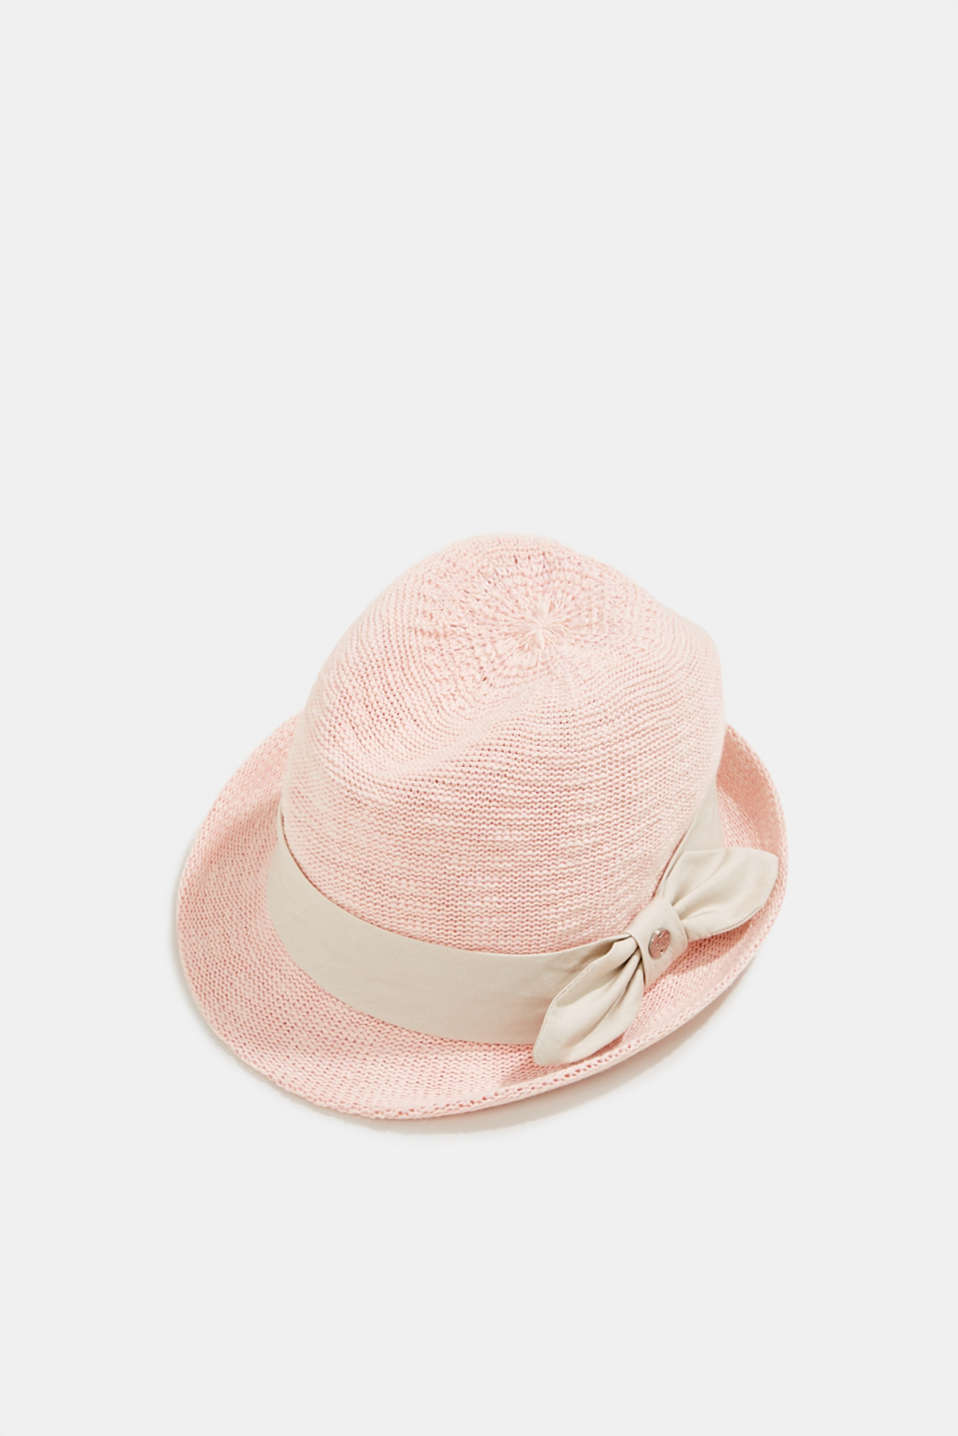 Esprit - Crocheted trilby hat with a hat band